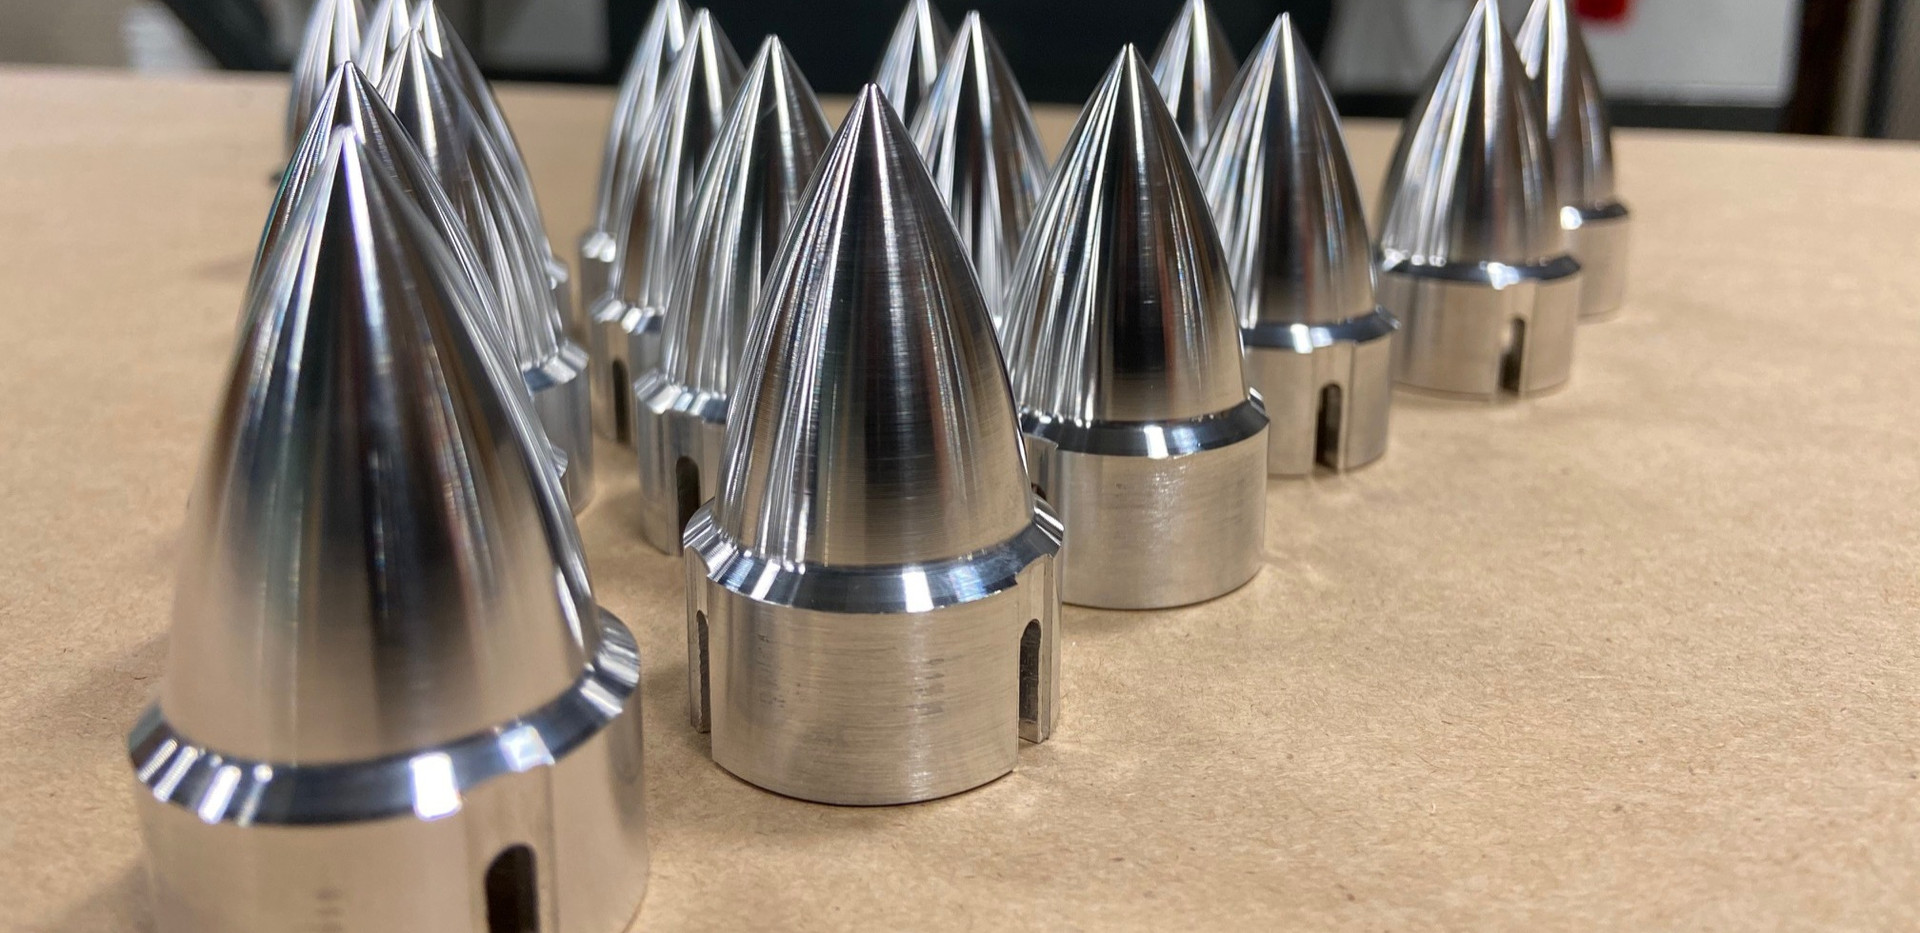 Motorcycle axle spikes